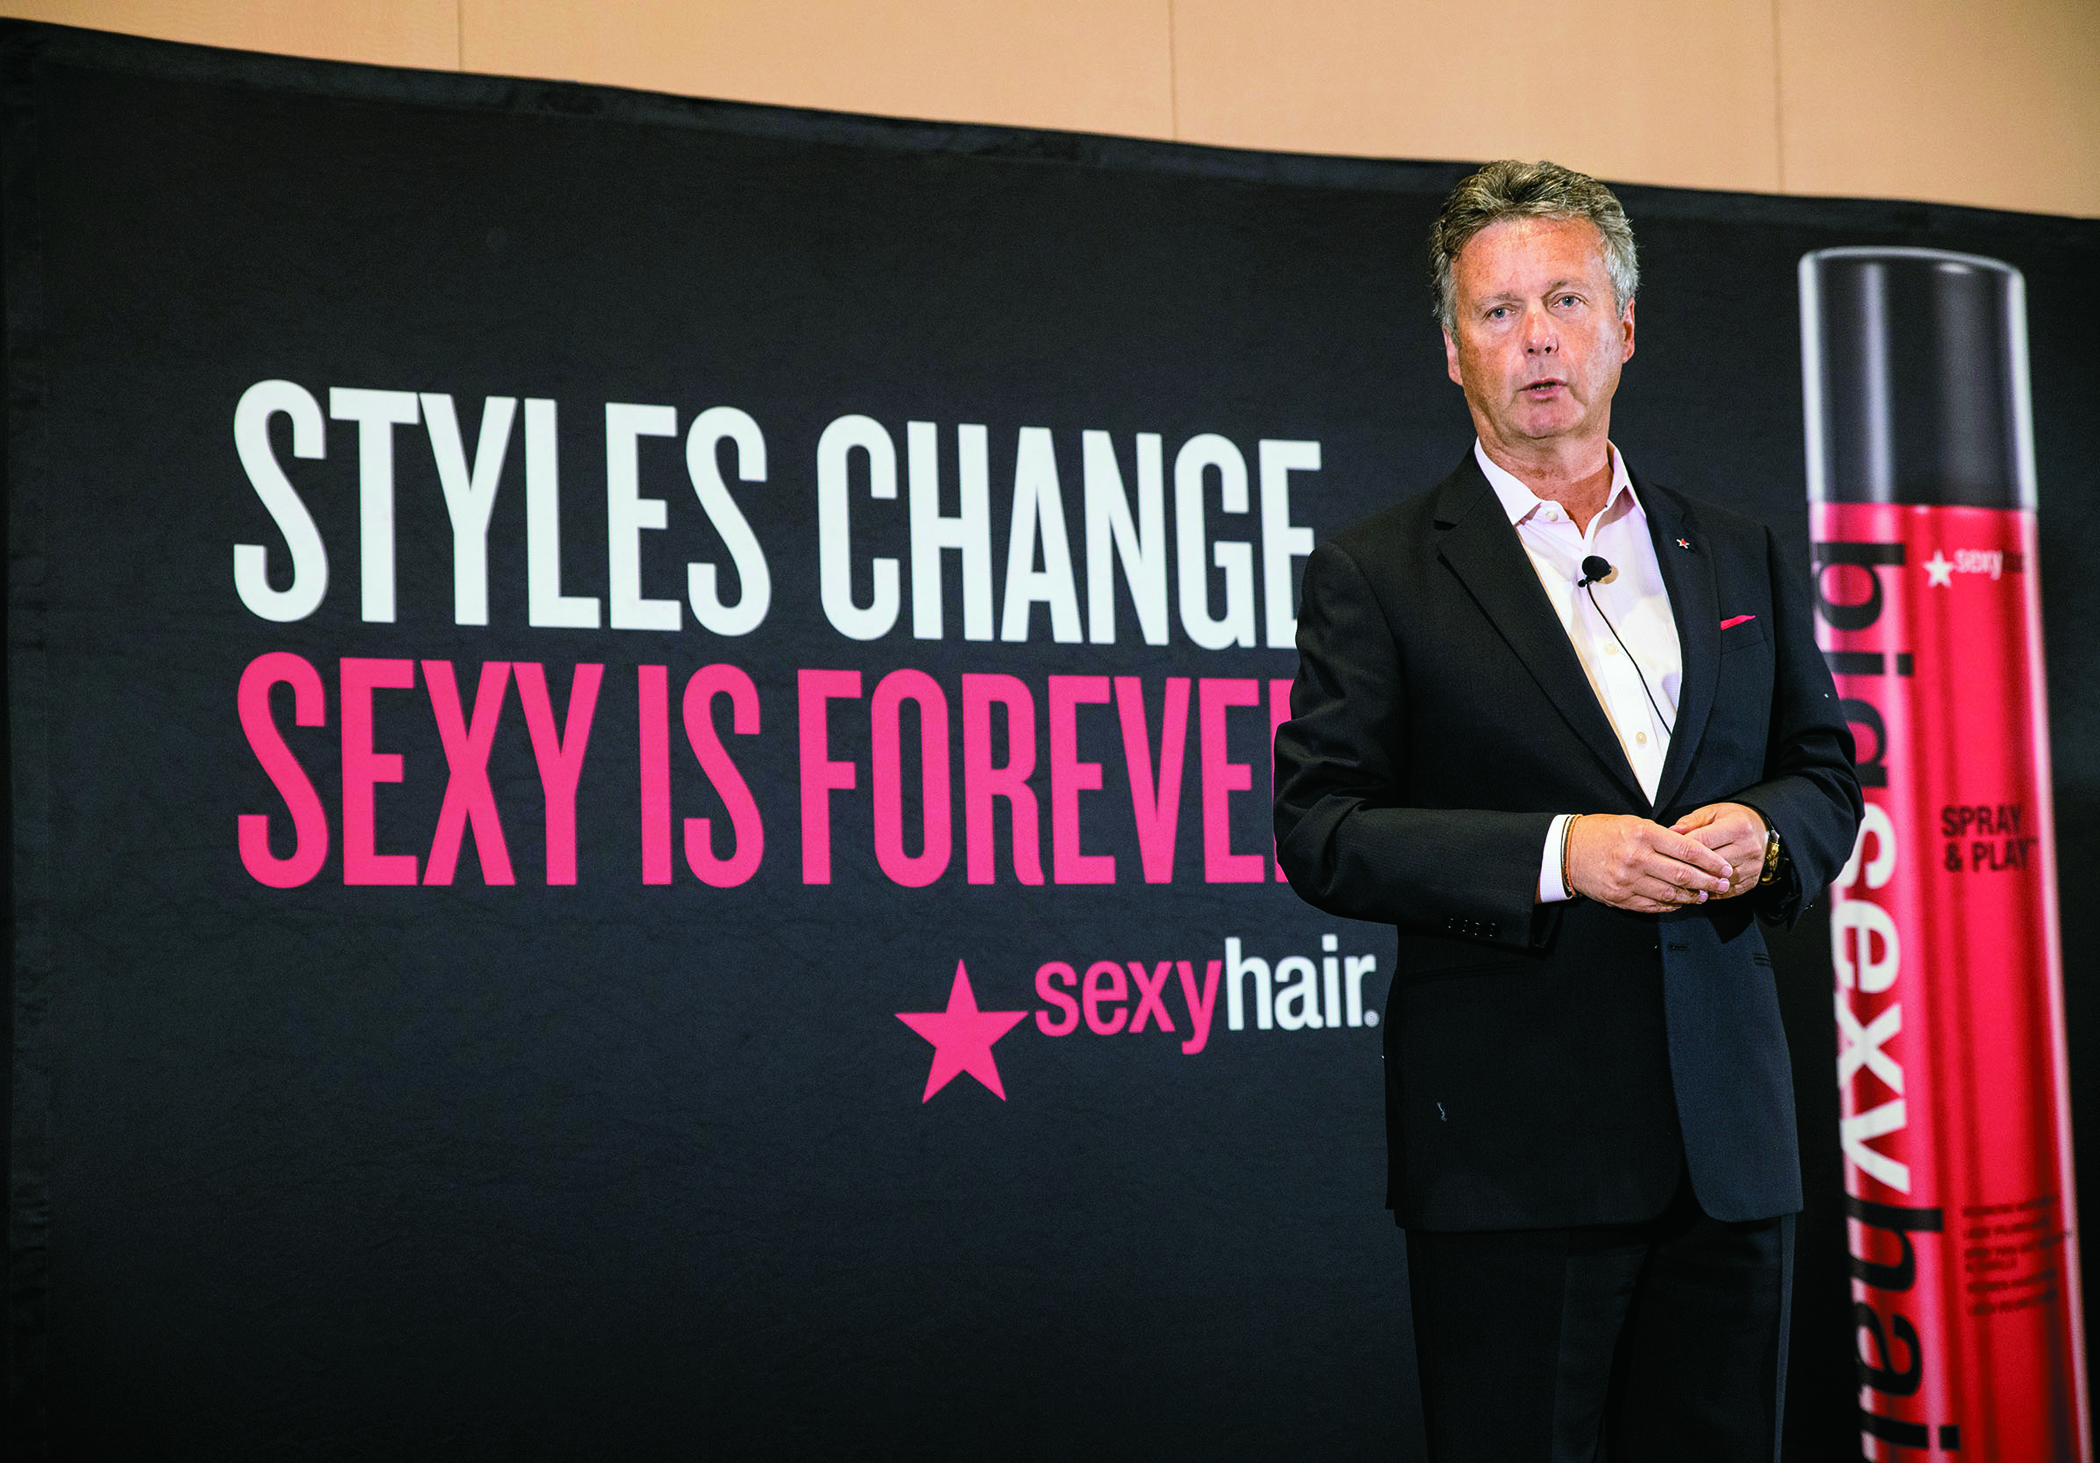 Karl Heinz, president and CEO of Sexy Hair